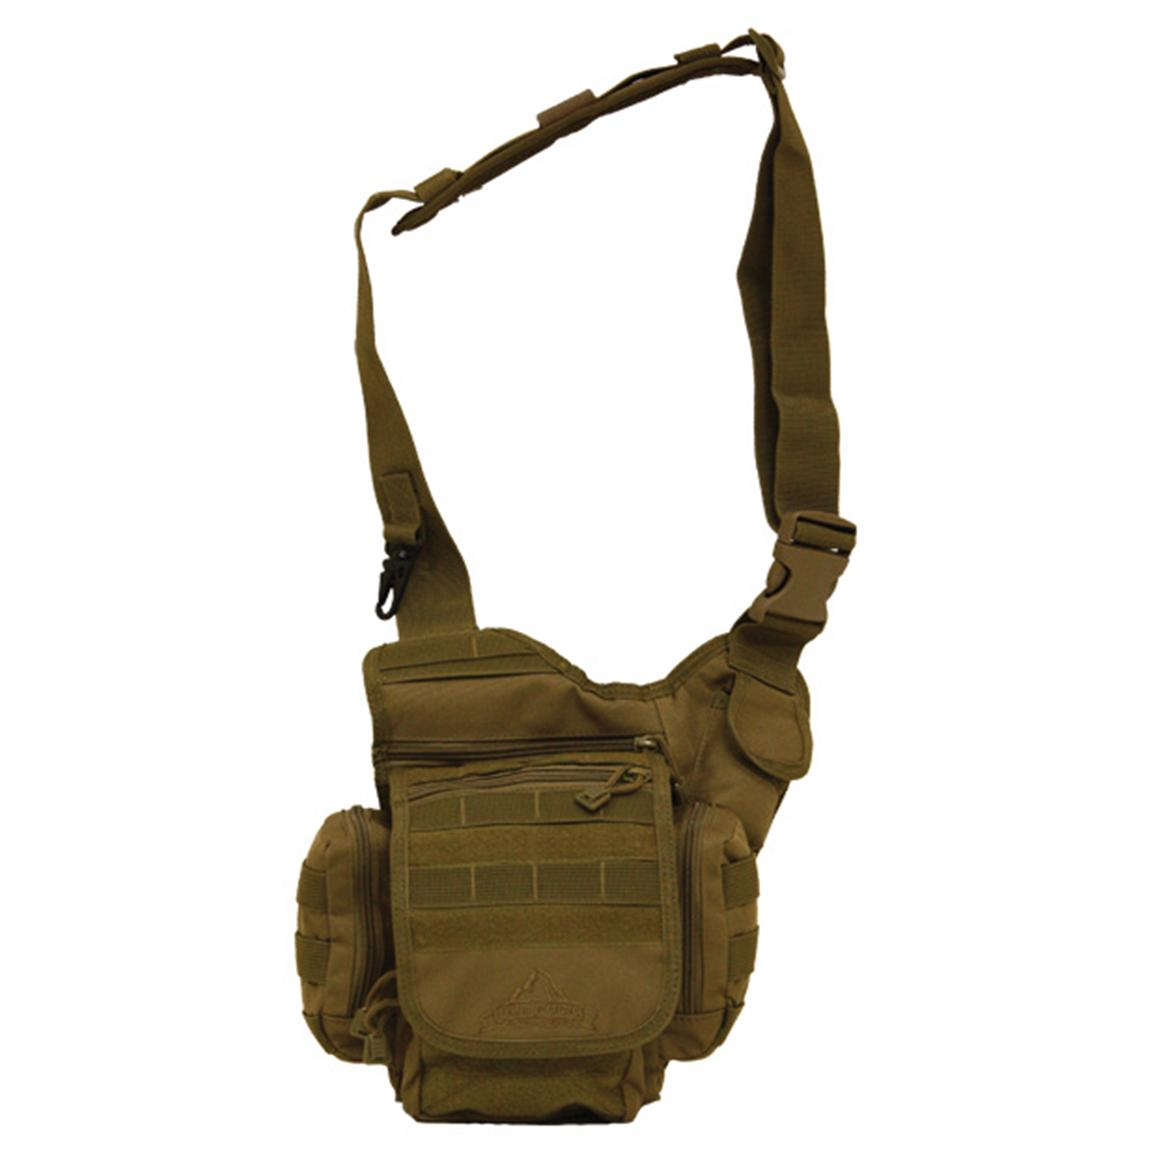 Red Rock Outdoor Gear Nomad Sling Bag - 299879, Military Style ...